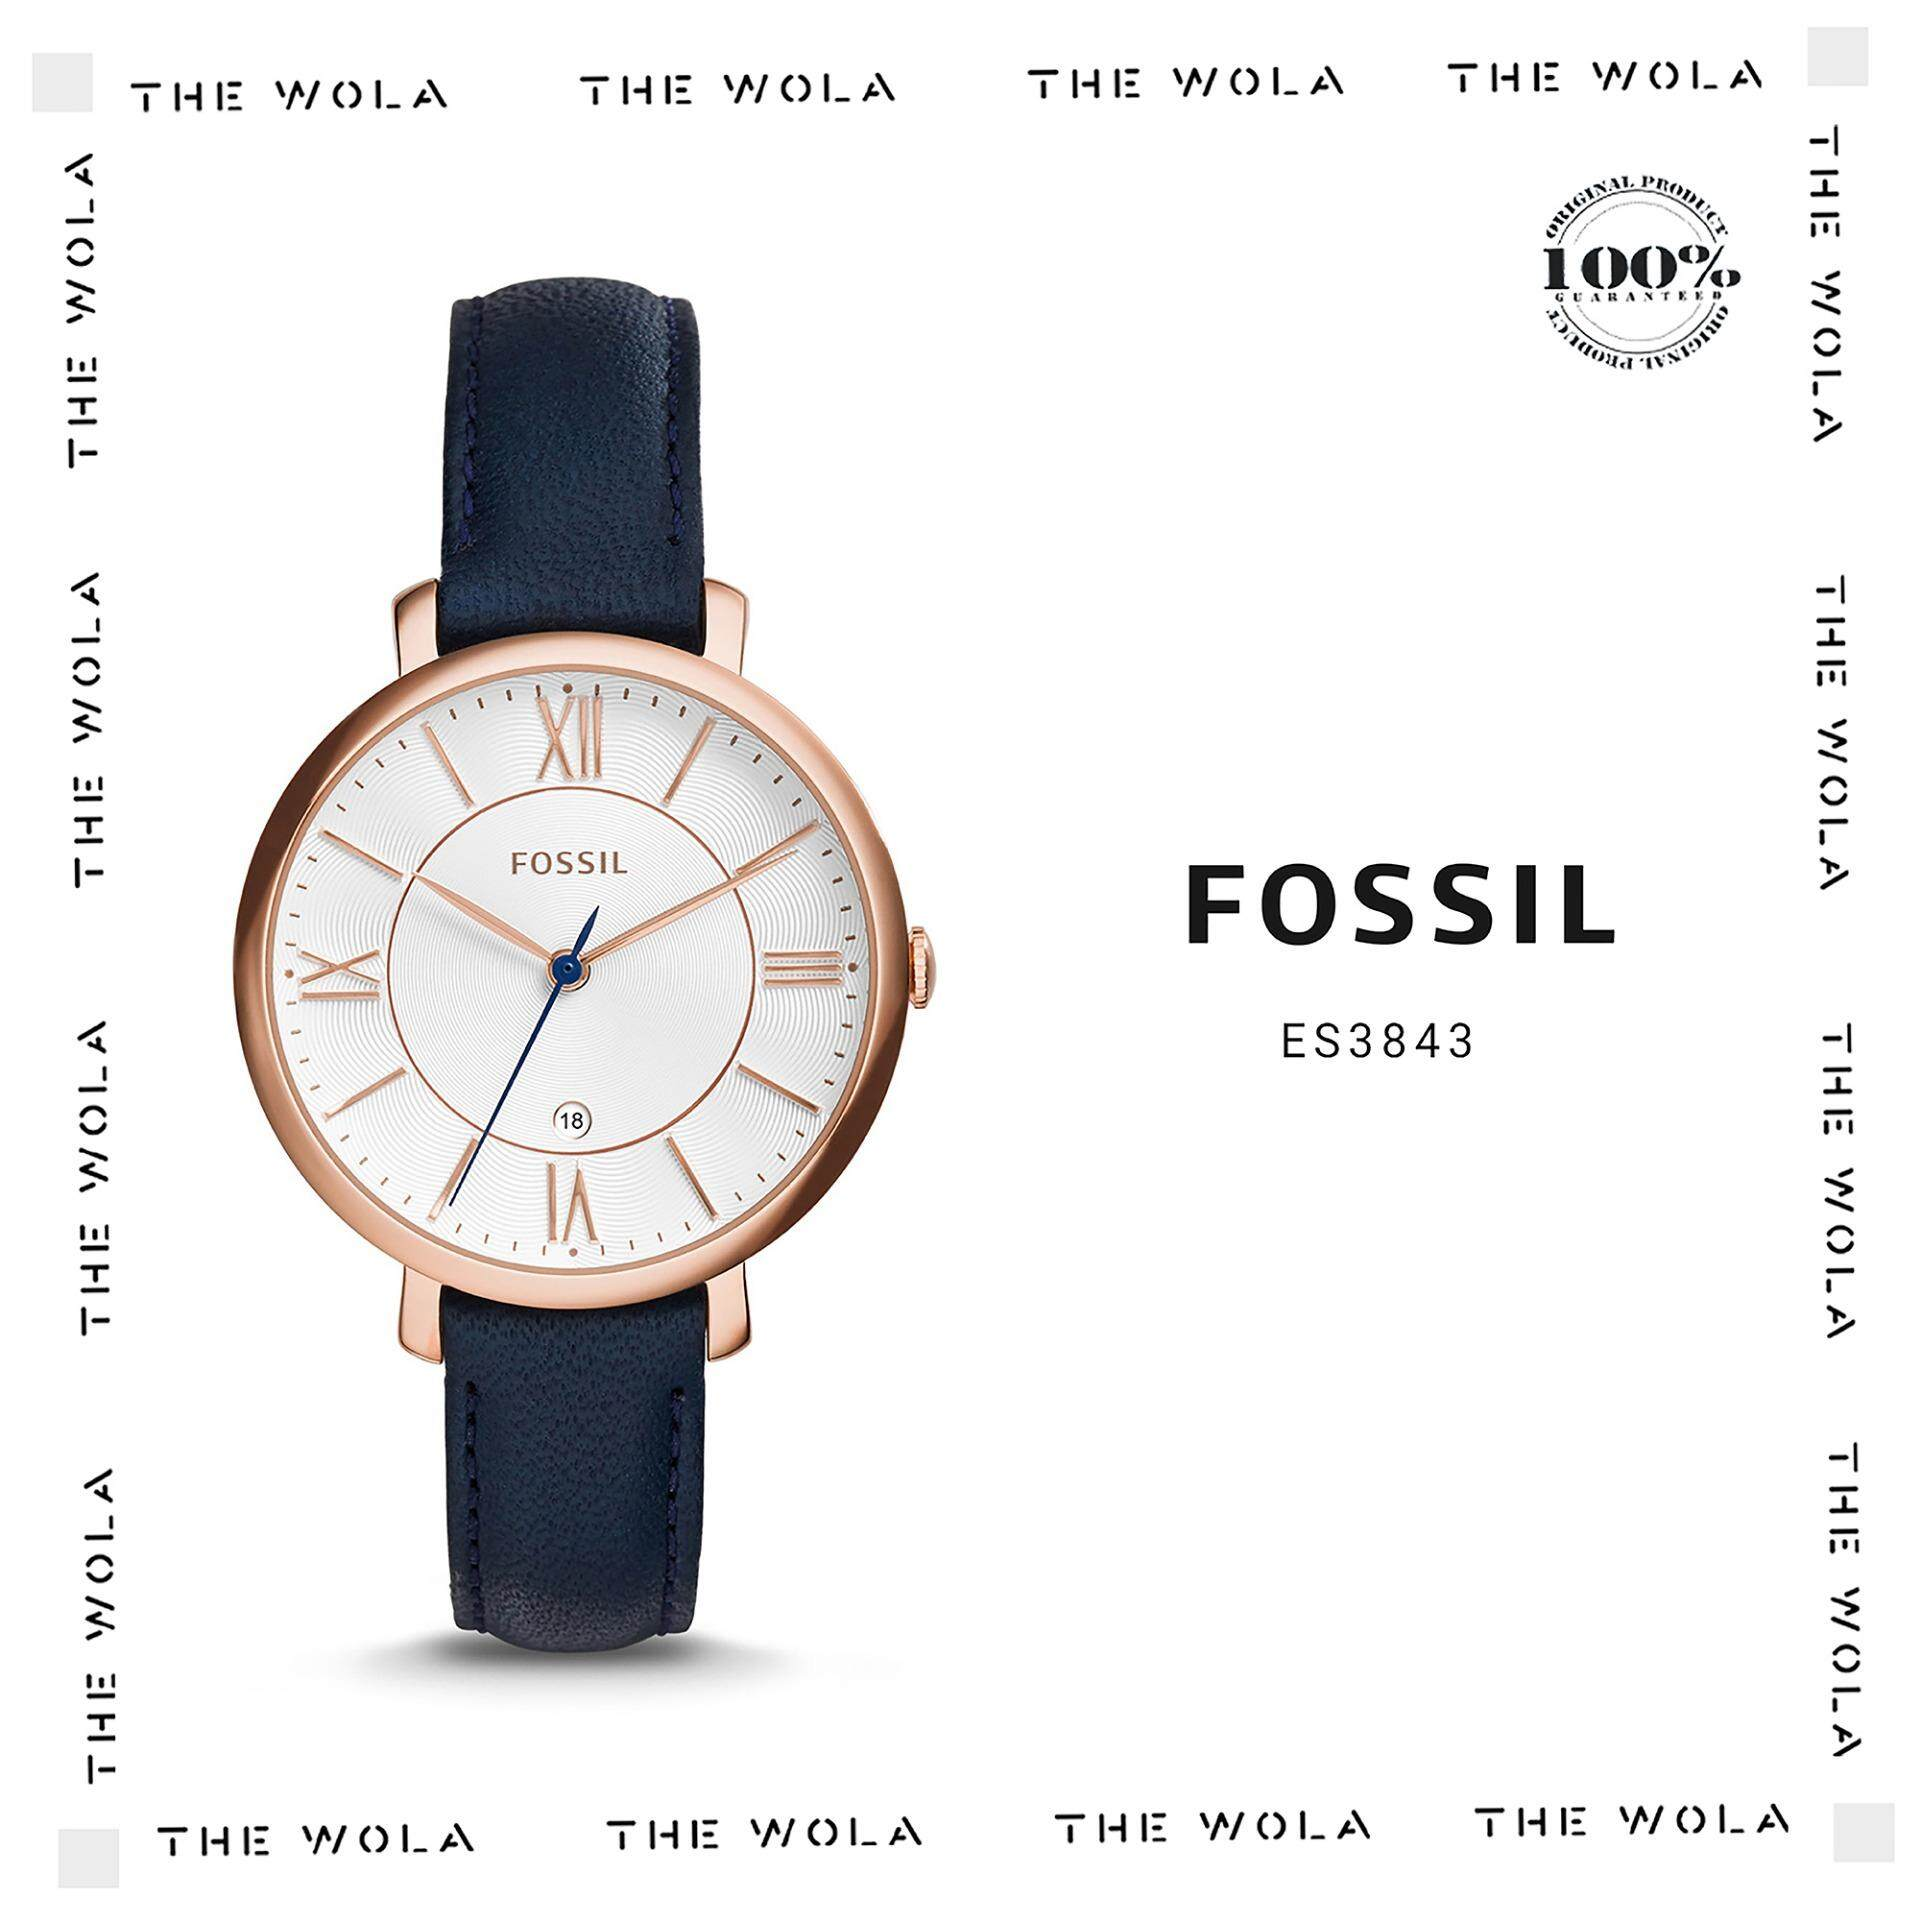 Fossil Watches Price In Malaysia Best Lazada Es3815 Jam Tangan Wanita Original Casual Women Watch Es3843 Genuine 2 Years Warranty